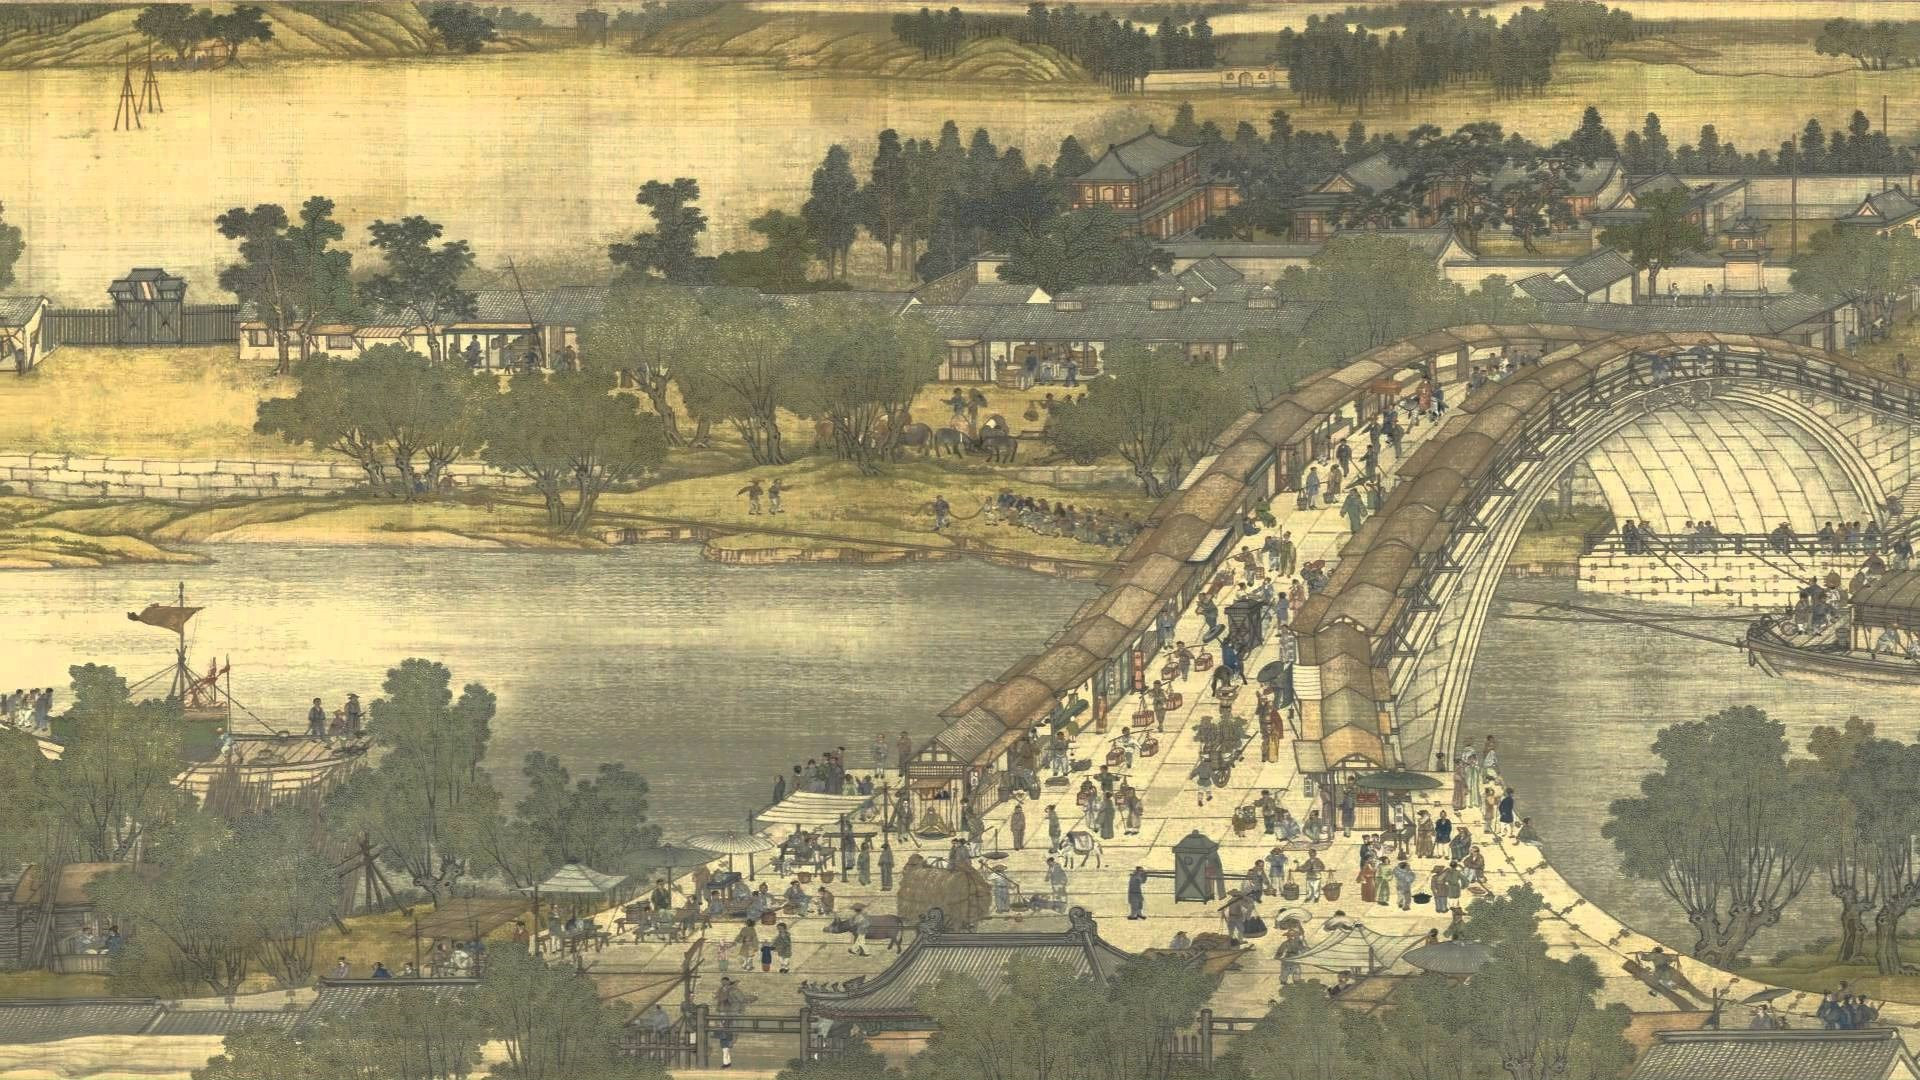 painting by the Song dynasty artist Zhang Zeduan (1085–1145)